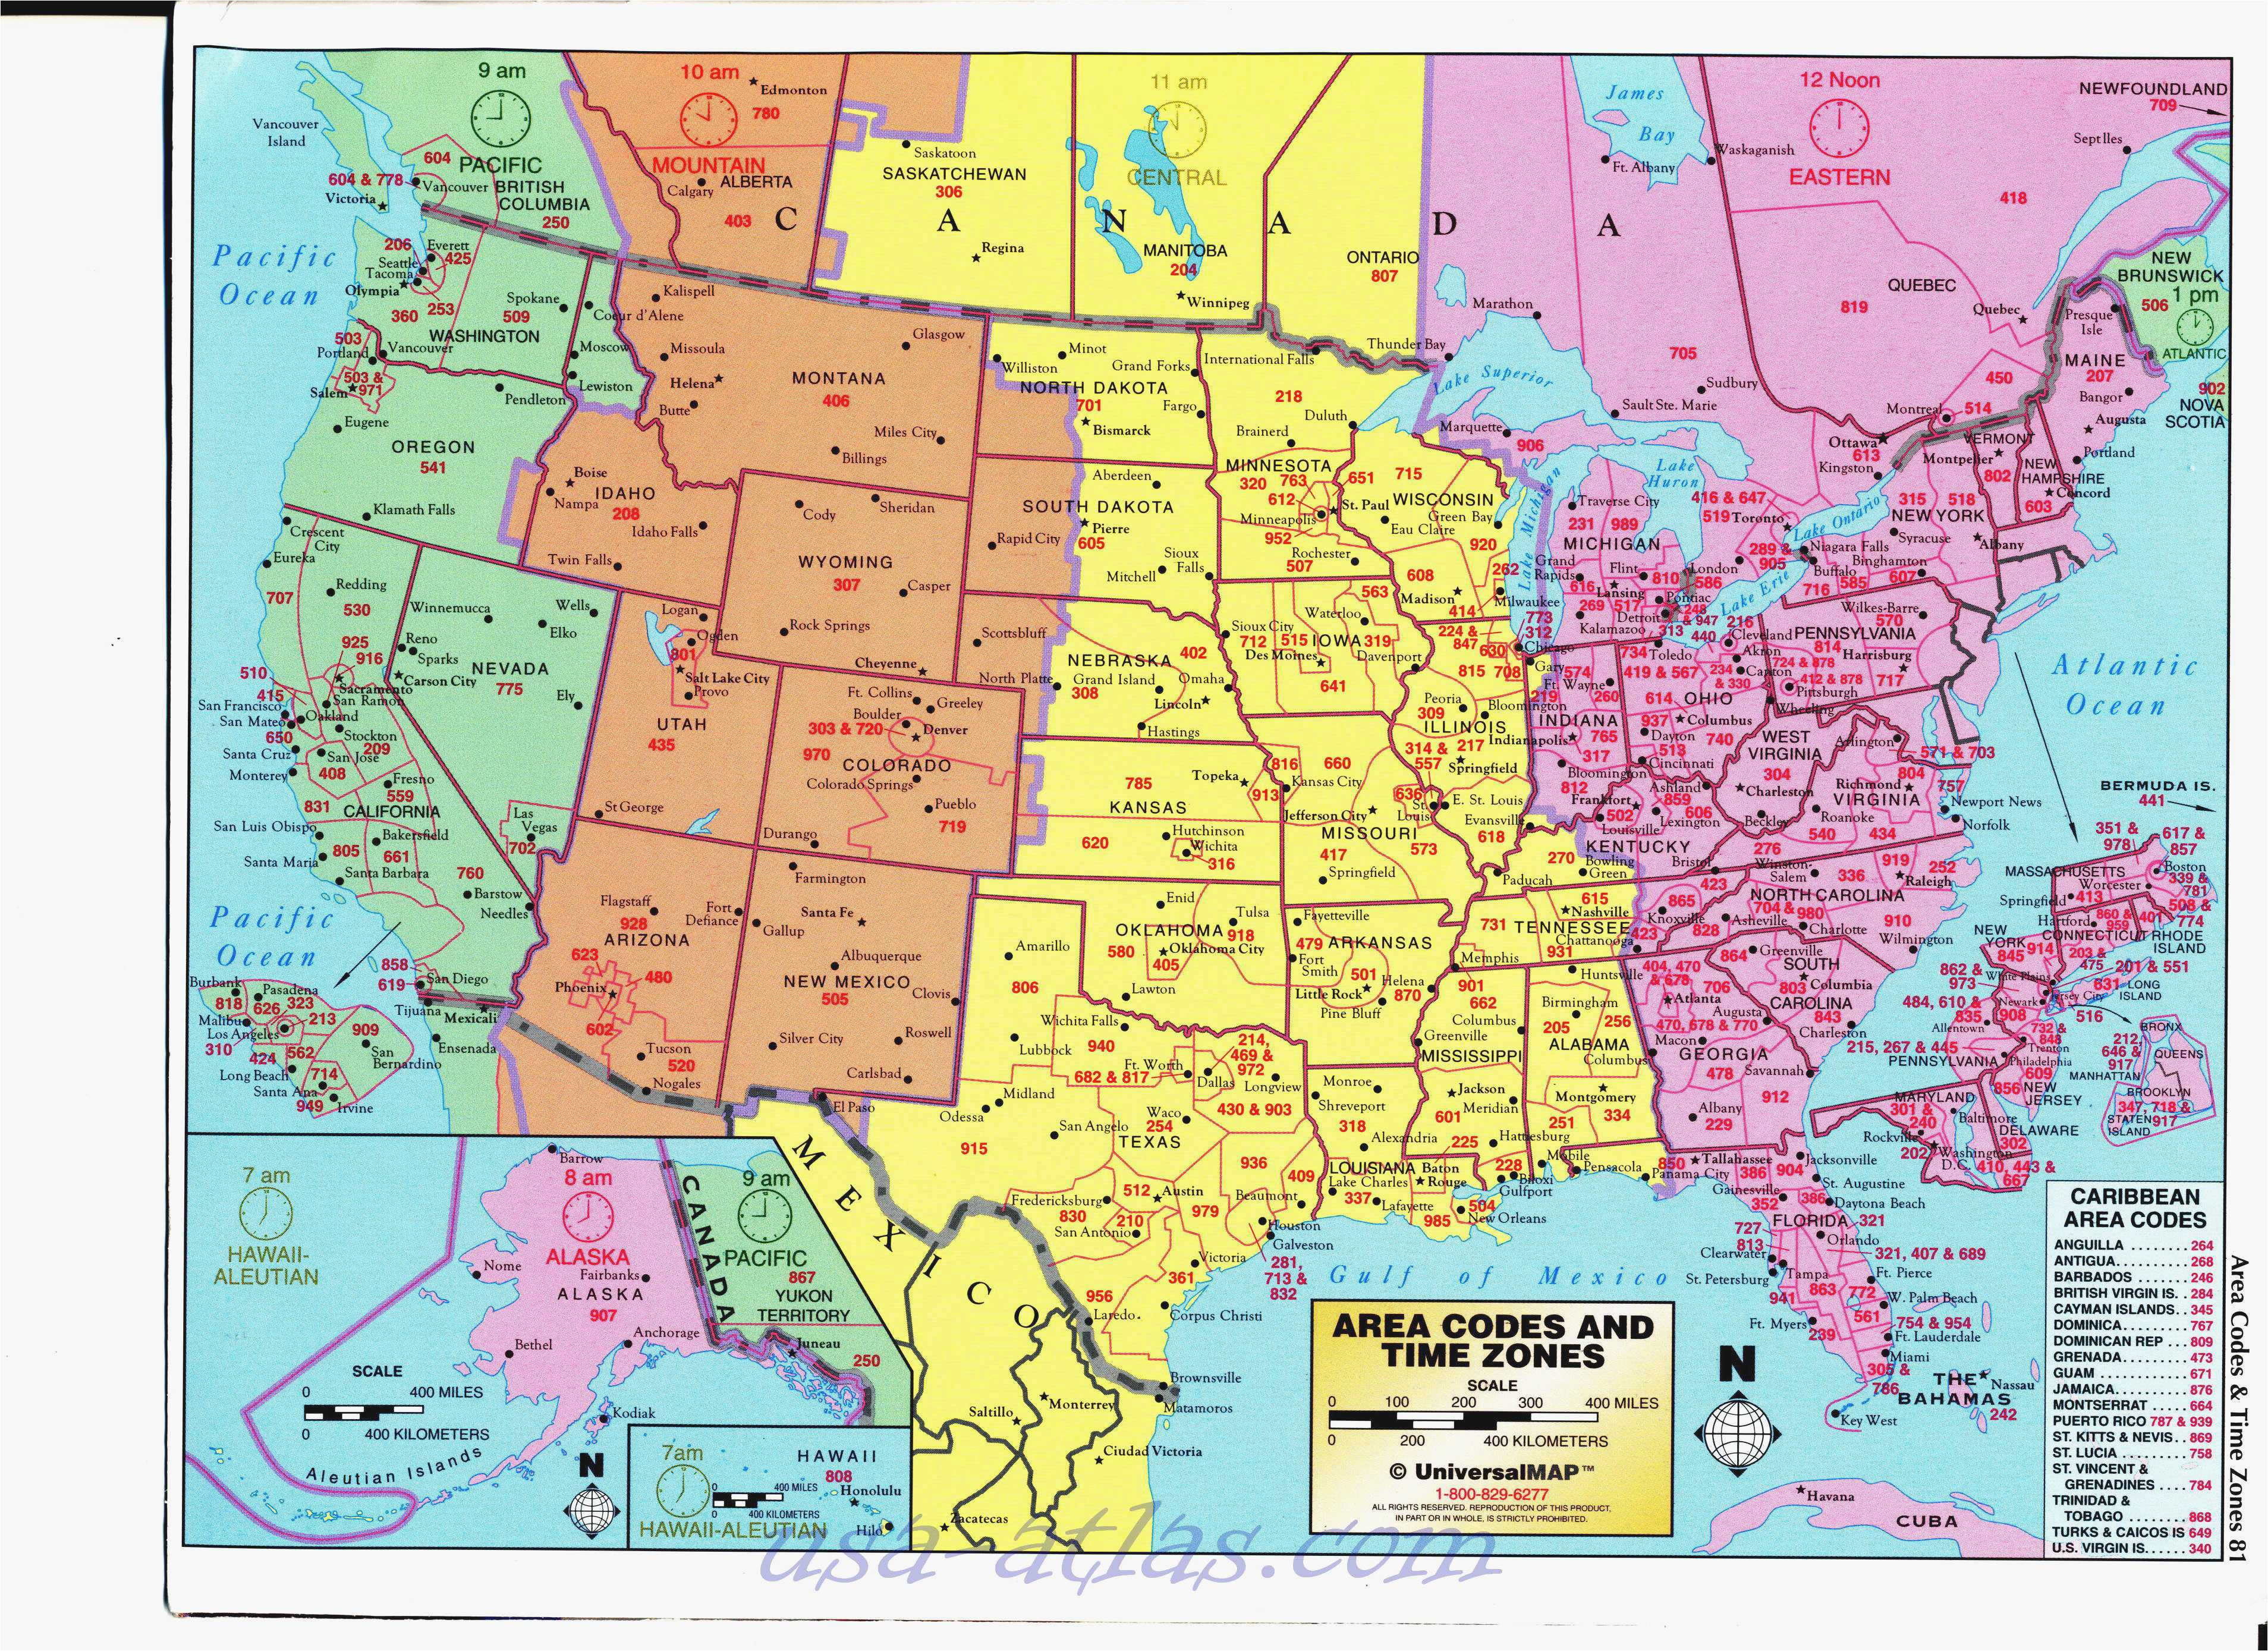 louisville zip code map best of 925 area code map awesome us canada